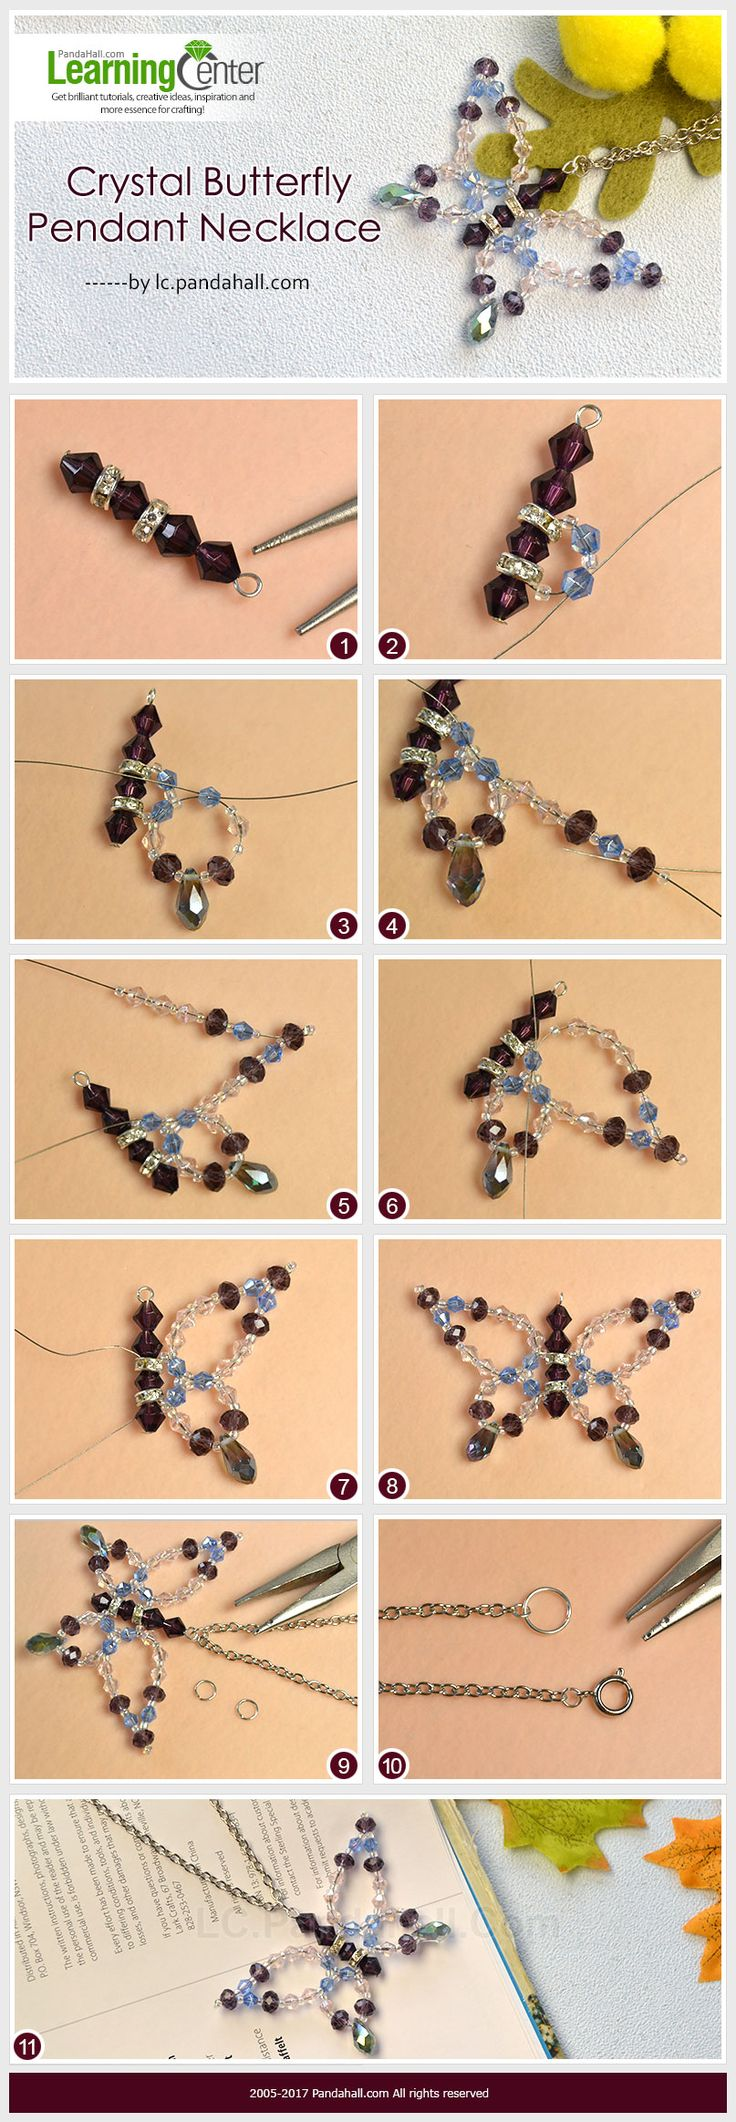 16 Best Beads More Images On Pinterest Bead Animals Copper Electrical Wiring Stranded Wireedit Crystal Butterfly Pendant Necklace The Is Composed Of Different Glass Making Way